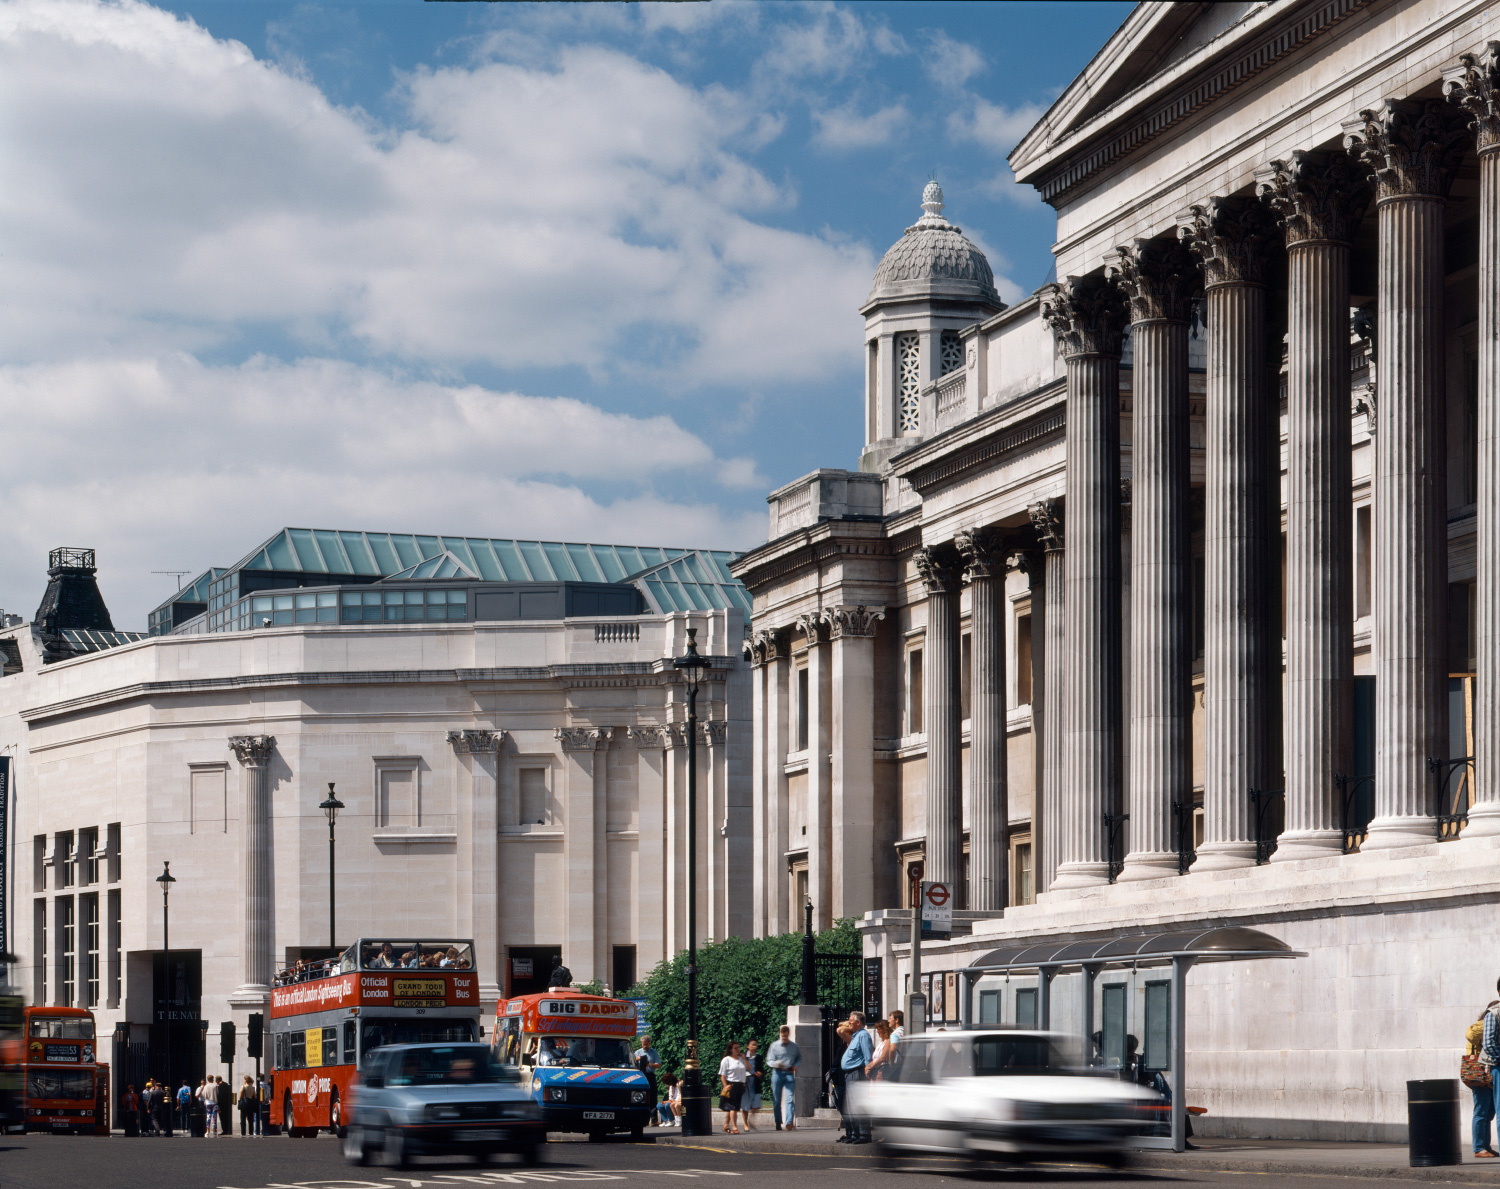 Photo of The National Gallery Sainsbury Wing